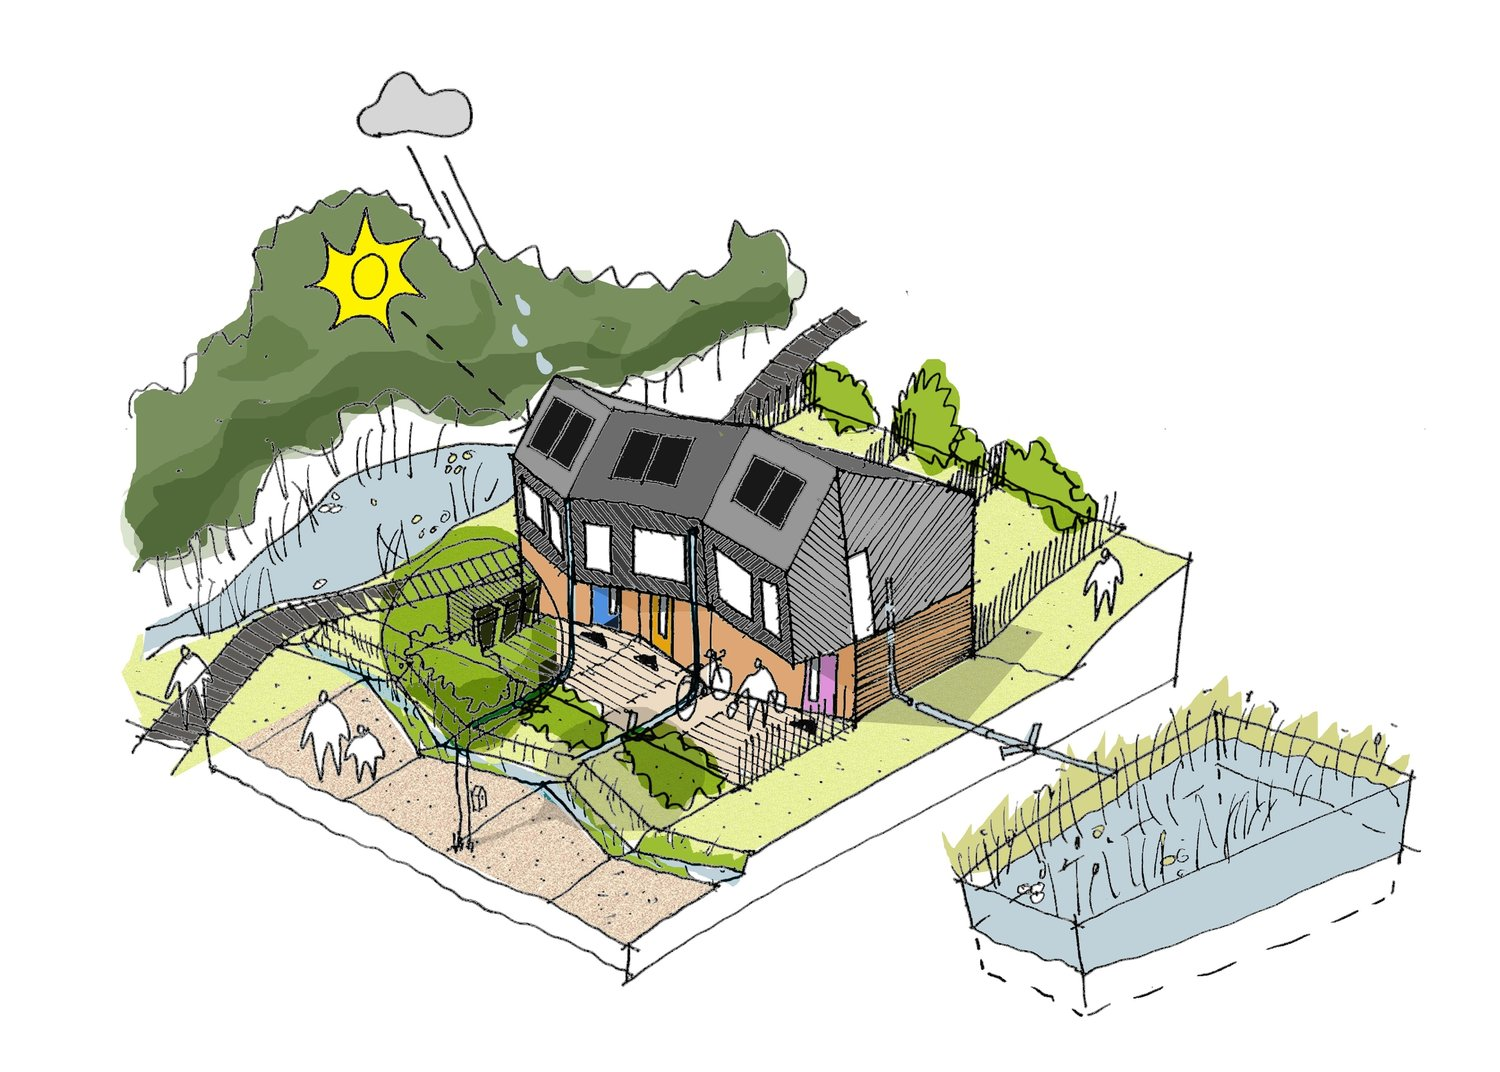 Bridport cohousing barefoot architects for Spring 4 architecture diagram